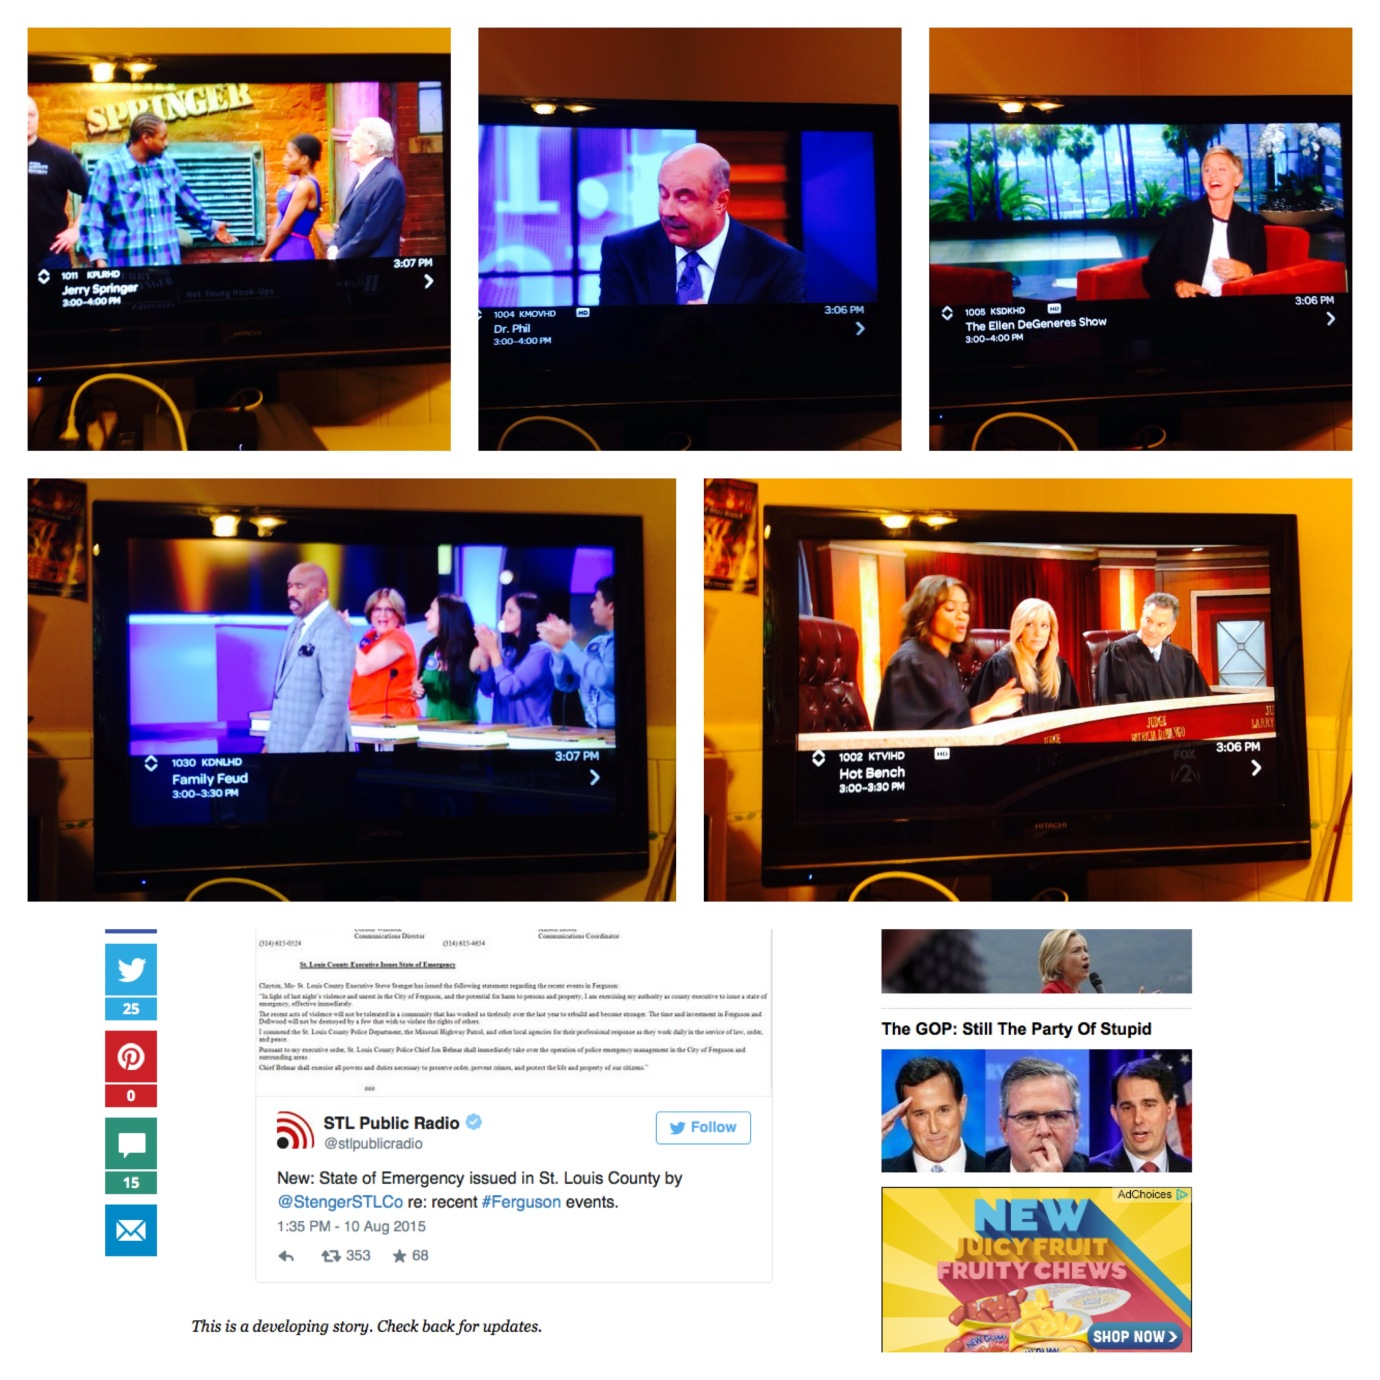 Six pictures of media outlets in St. Louis, Missouri on the afternoon of Monday, August 10, 2015, hours after a State of Emergency was called by the St. Louis County Executive, Steve Stenger. The top 5 are local terrestrial TV stations showing regular programming (Jerry Springer, Dr. Phil, Ellen Degeneres [a re-run], Family Feud, and Hot Bench), and the bottom picture is a screen capture from Huffingtonpost.com reposting a tweet from the largest local public radio station commenting on the declaration of the SOE. ©Rod Milam 2015